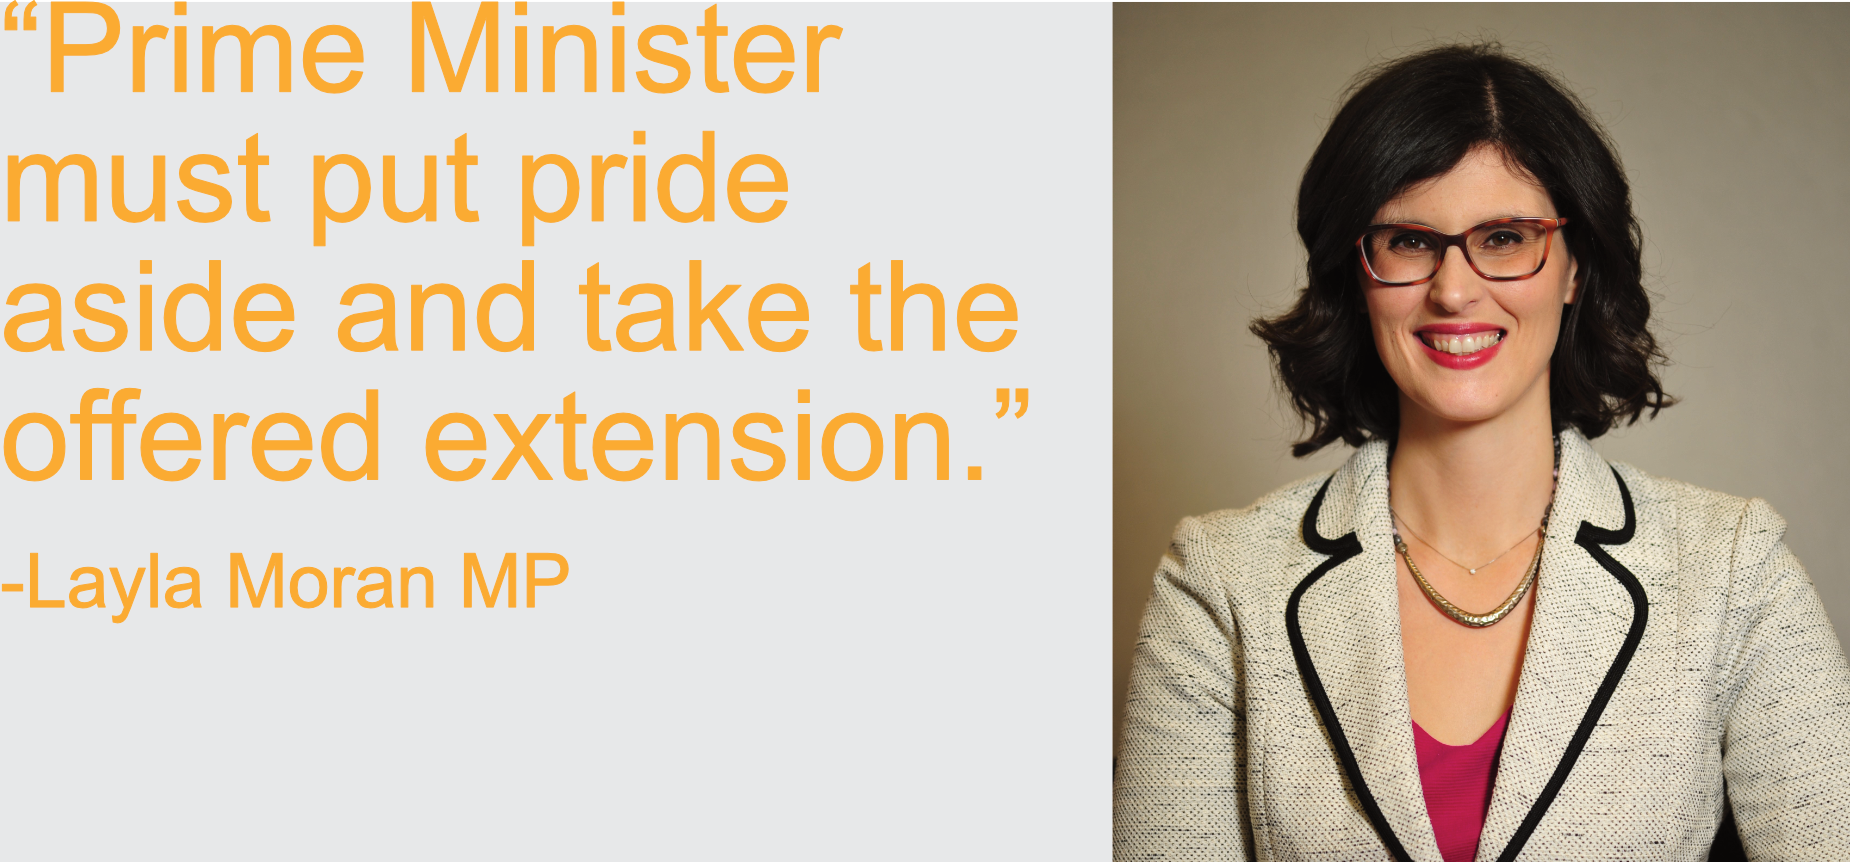 PM must put pride aside and take the offered extension